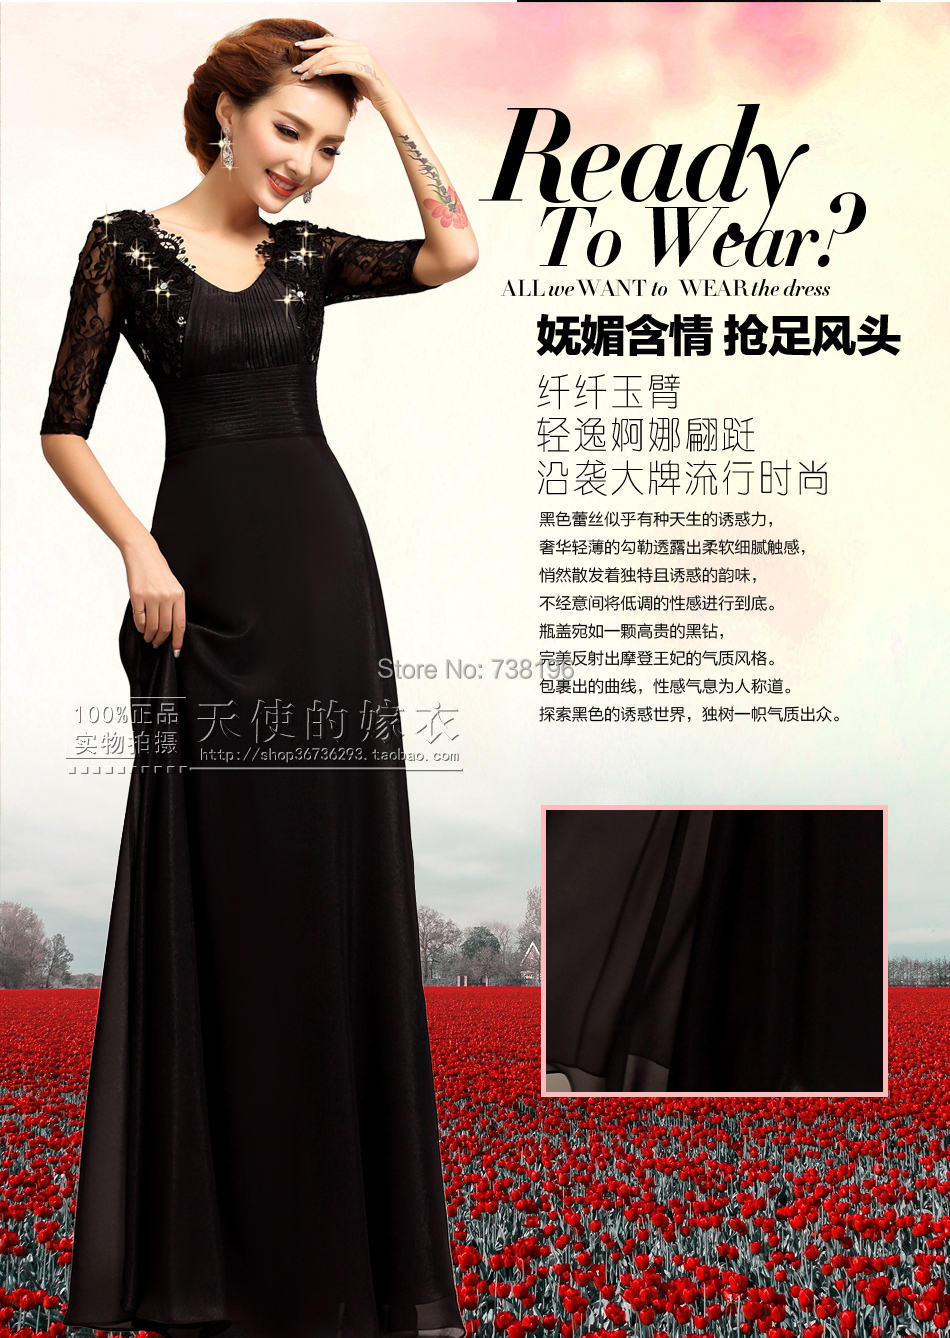 2016 ready to ship promotion wholesale chiffon half of sleeve black 2016 ready to ship promotion wholesale chiffon half of sleeve black lace bridesmaid dresses free shipping vestidos de fiesta in bridesmaid dresses from ombrellifo Image collections